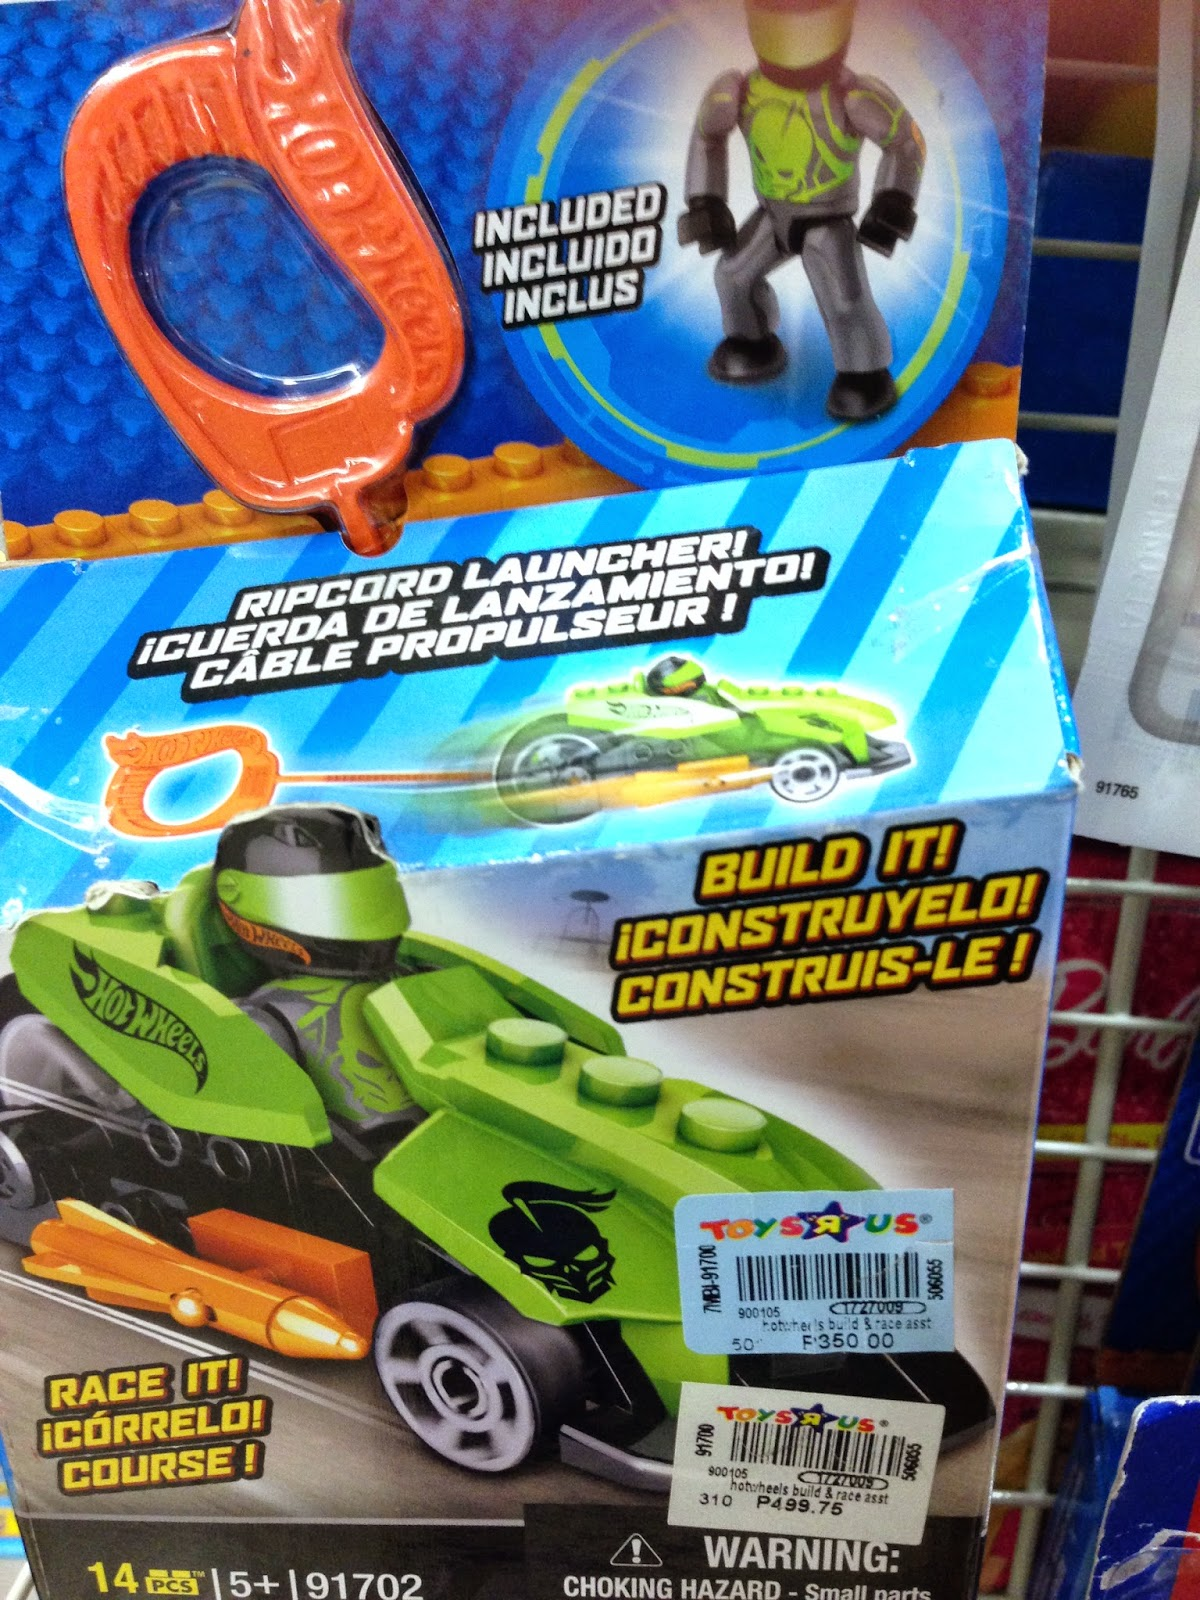 Toy Sale in Manila, Philippines 2015 : Hot Wheels Mega Bloks Surprise Toys on SALE (Ripcord Racers)